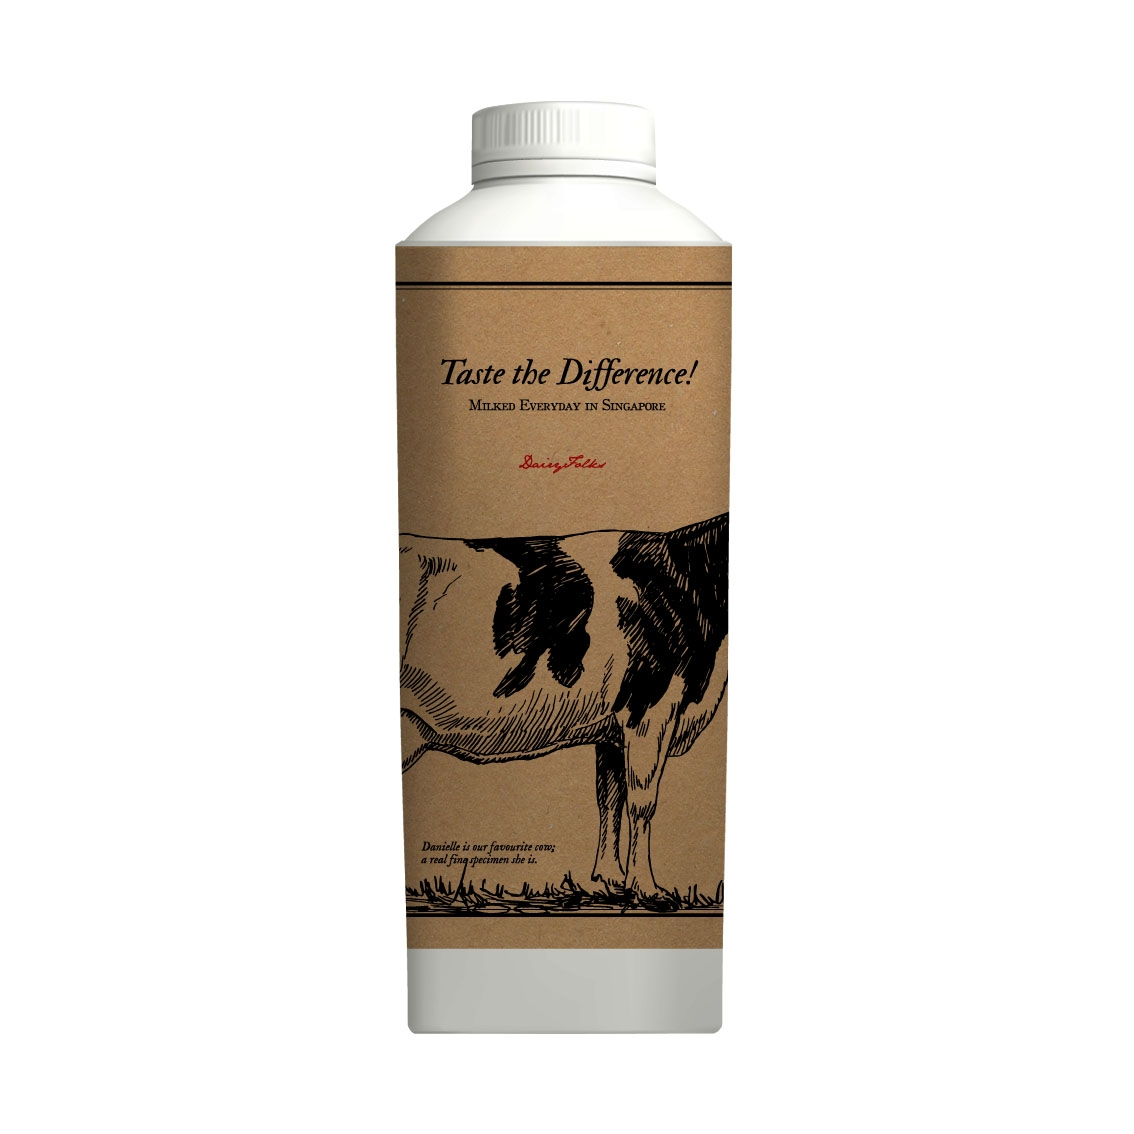 DairyFolks Fresh Milk